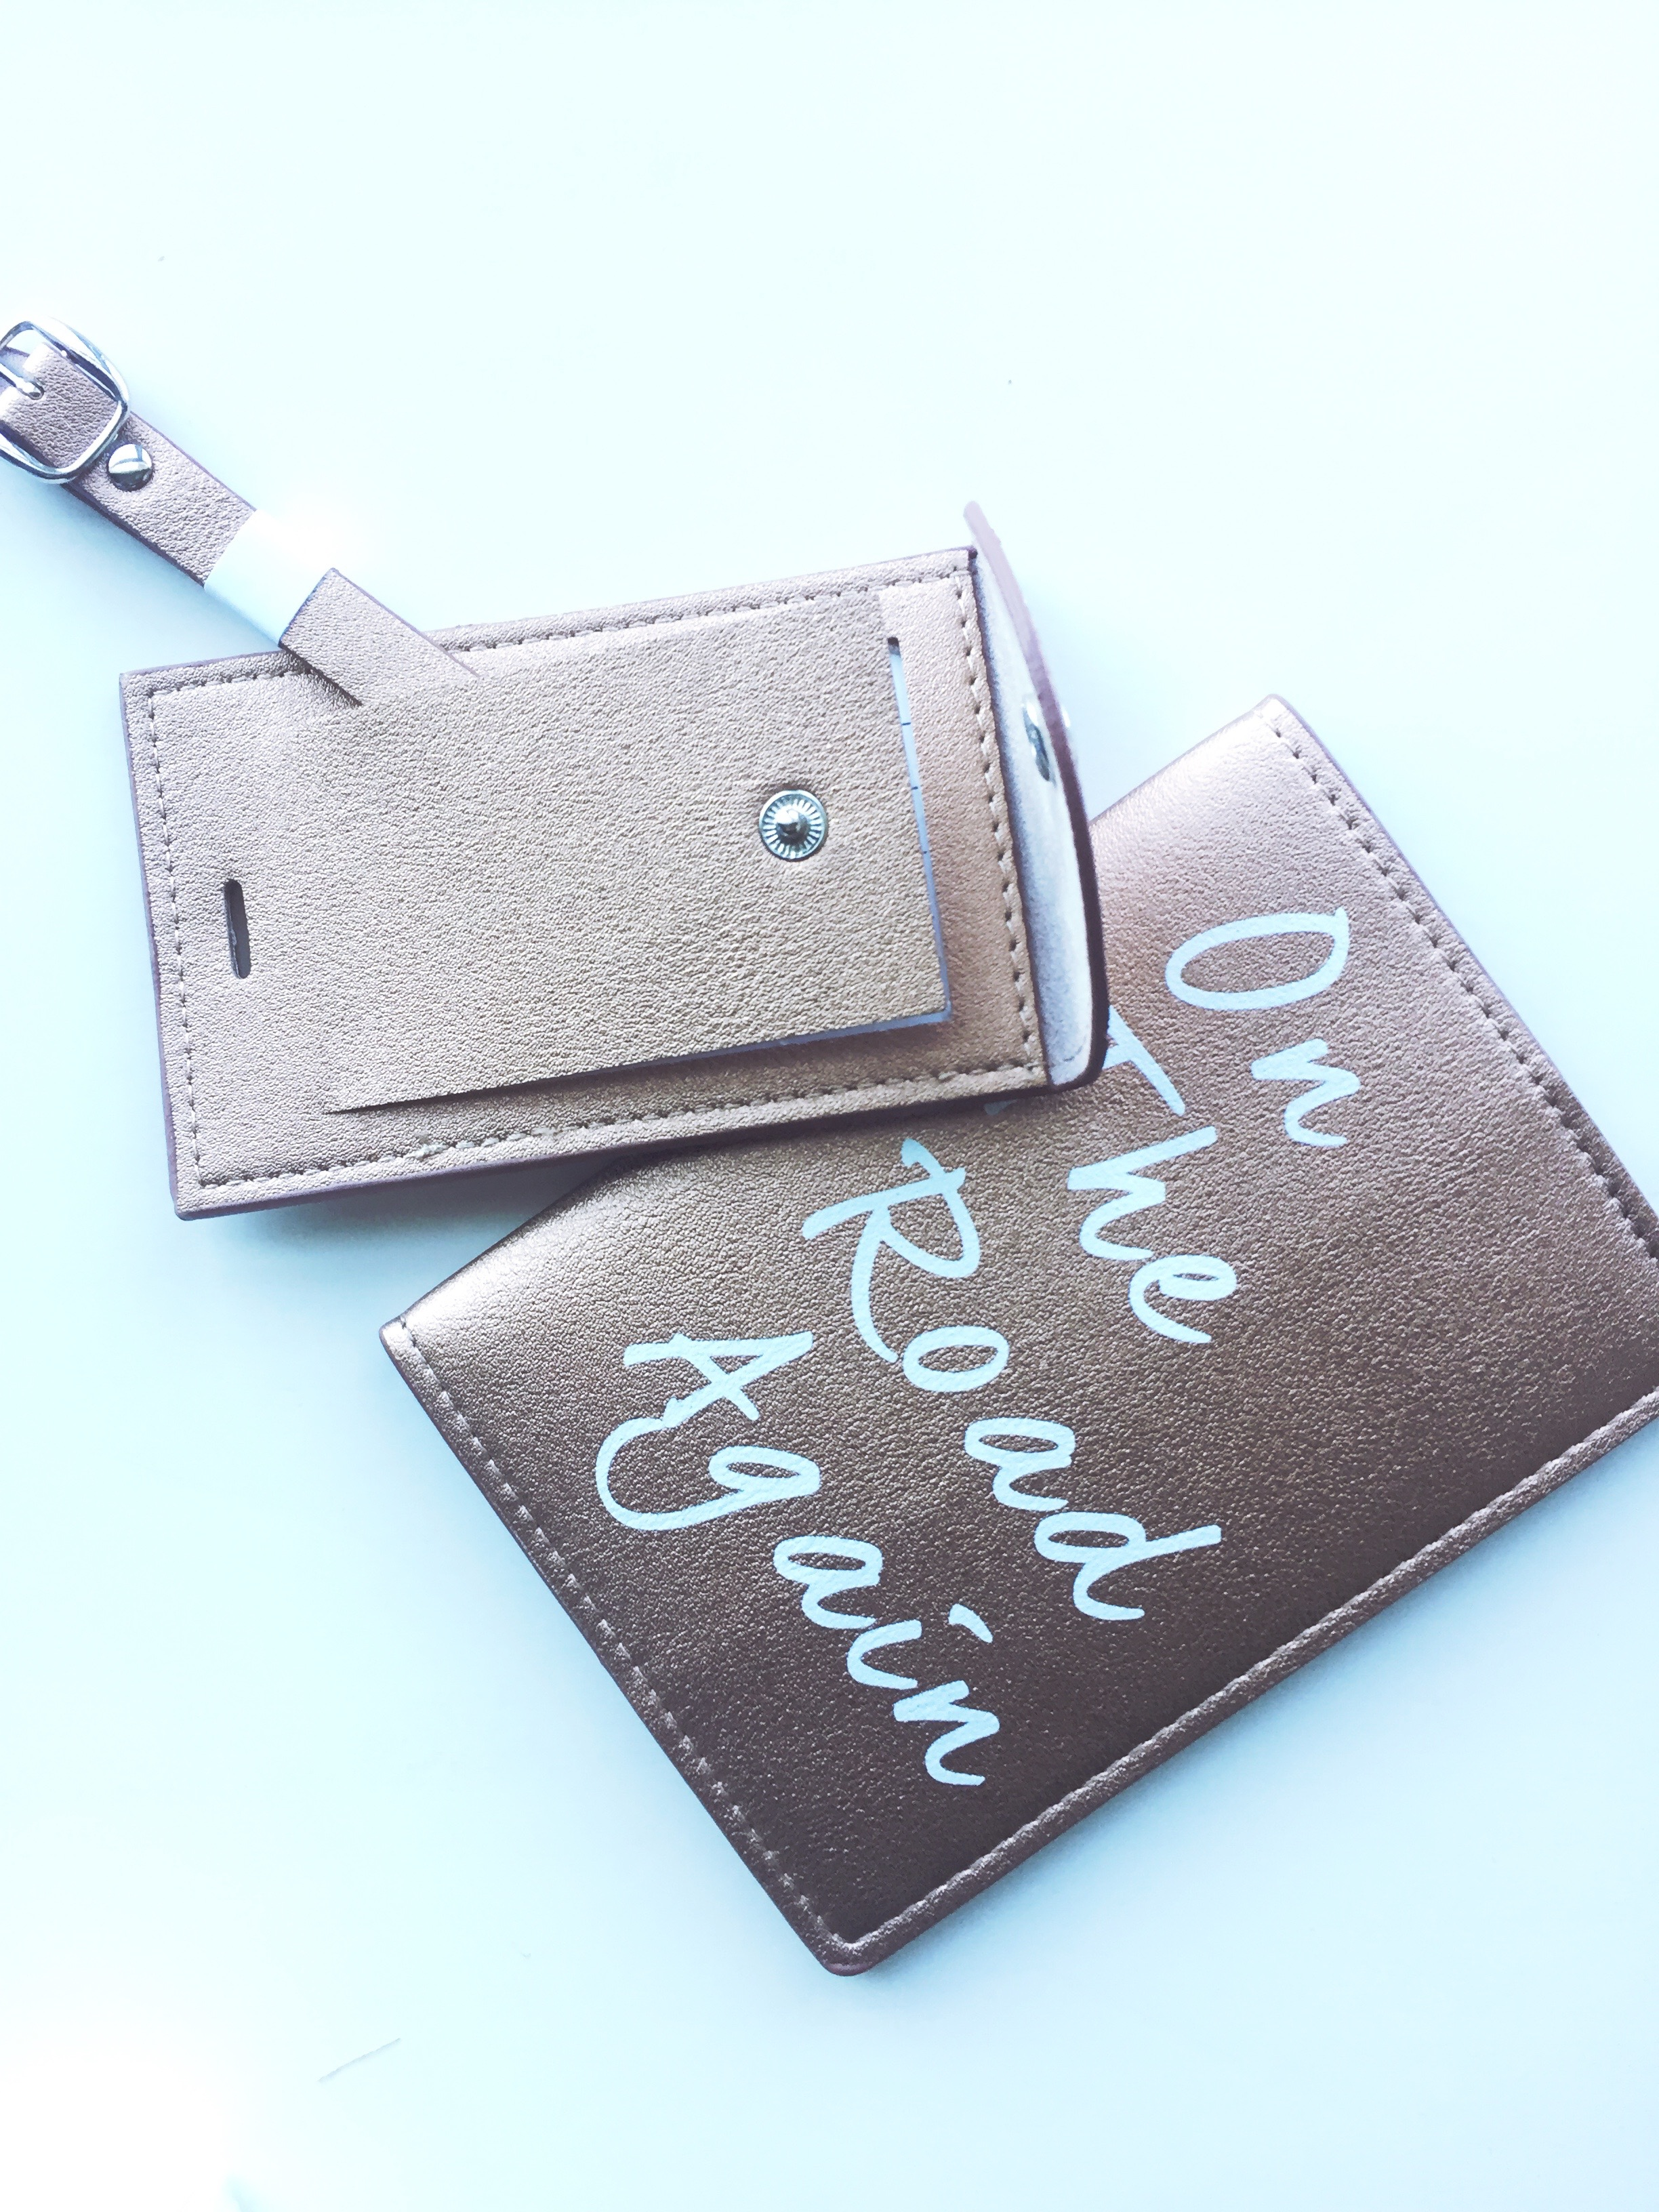 FabFitFun Summer 2017 Understated Leather Passport Holder & Luggage Tag